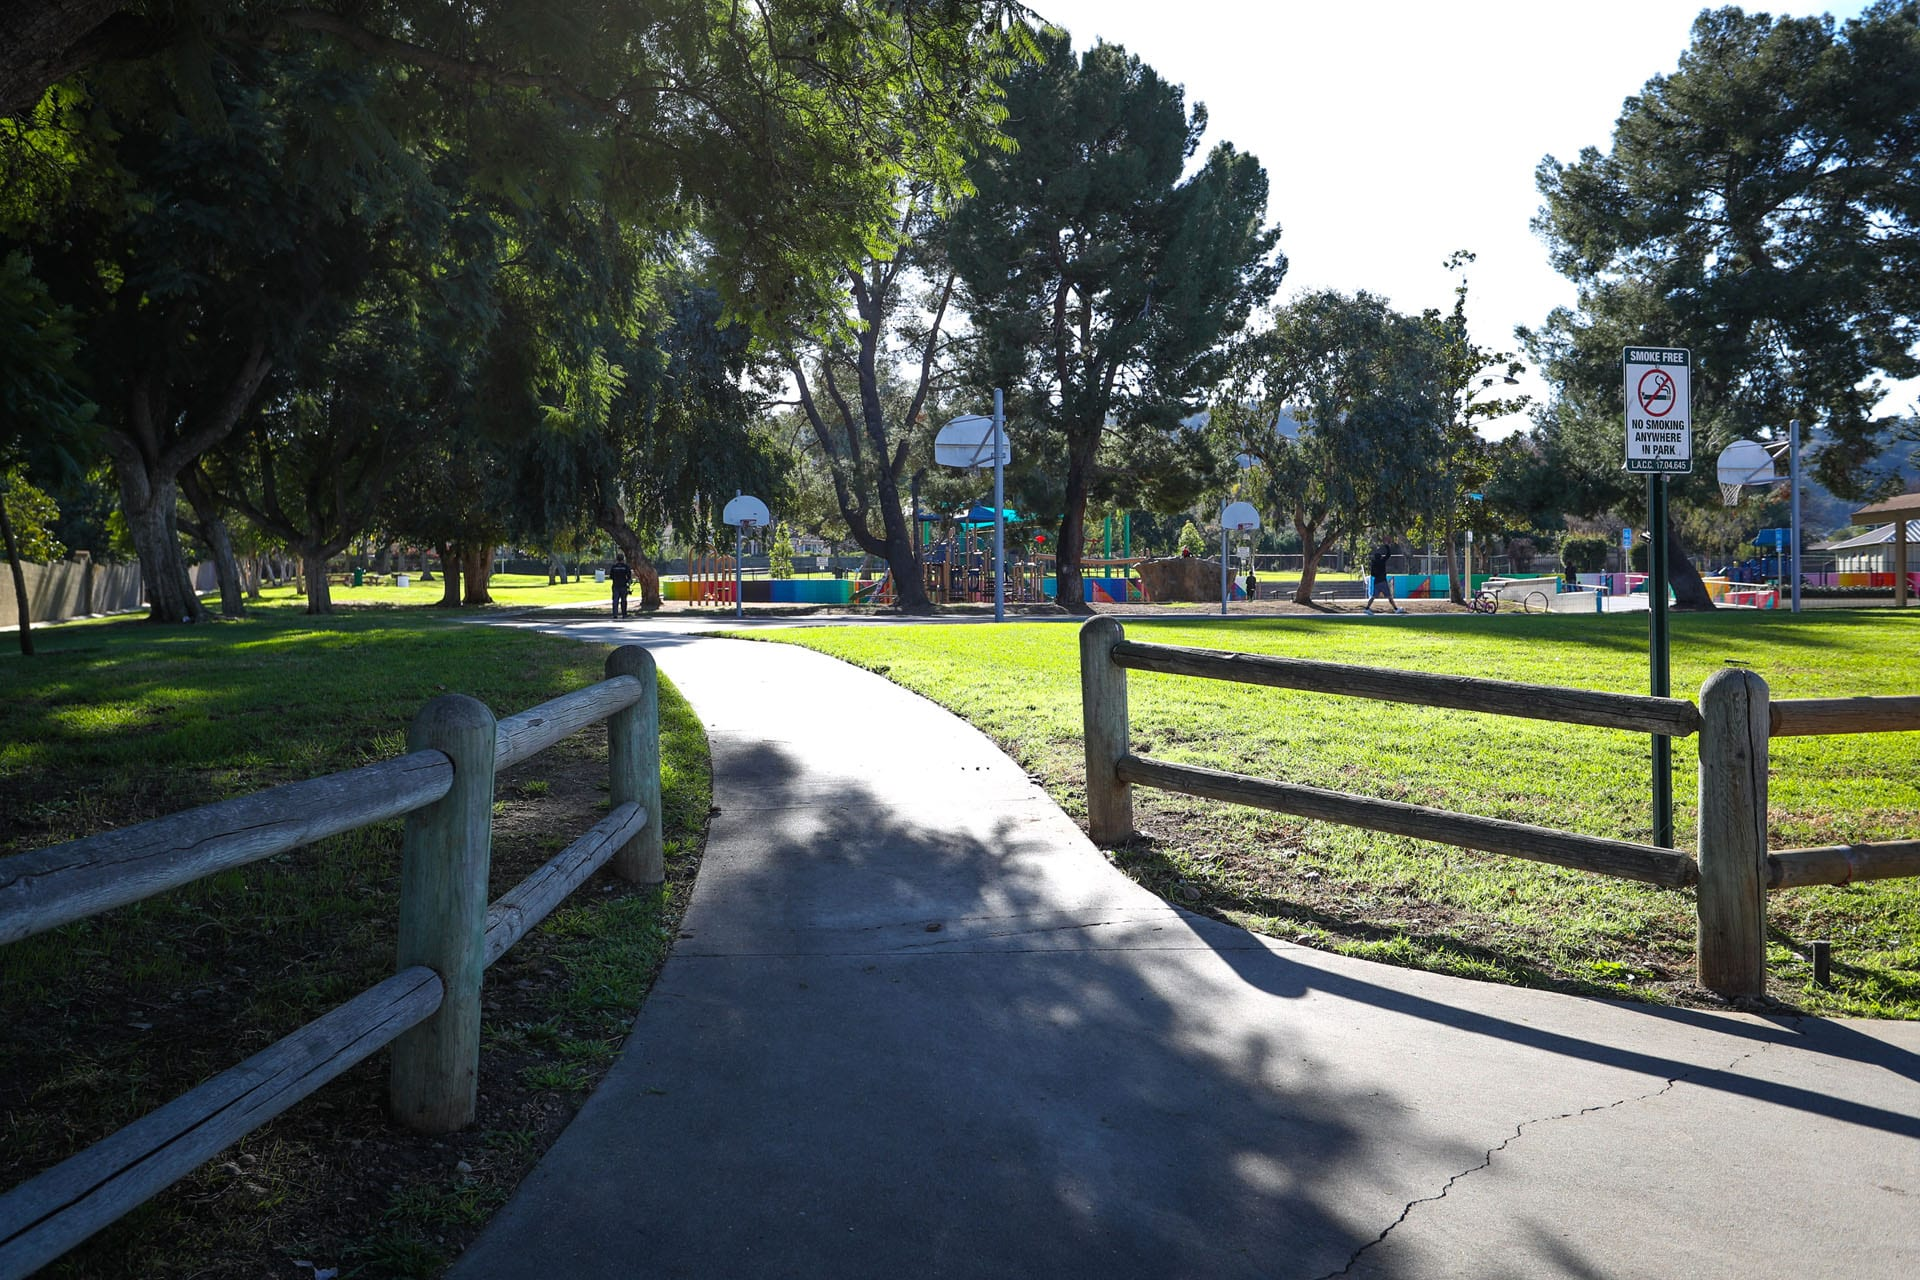 Sidewalk the the park